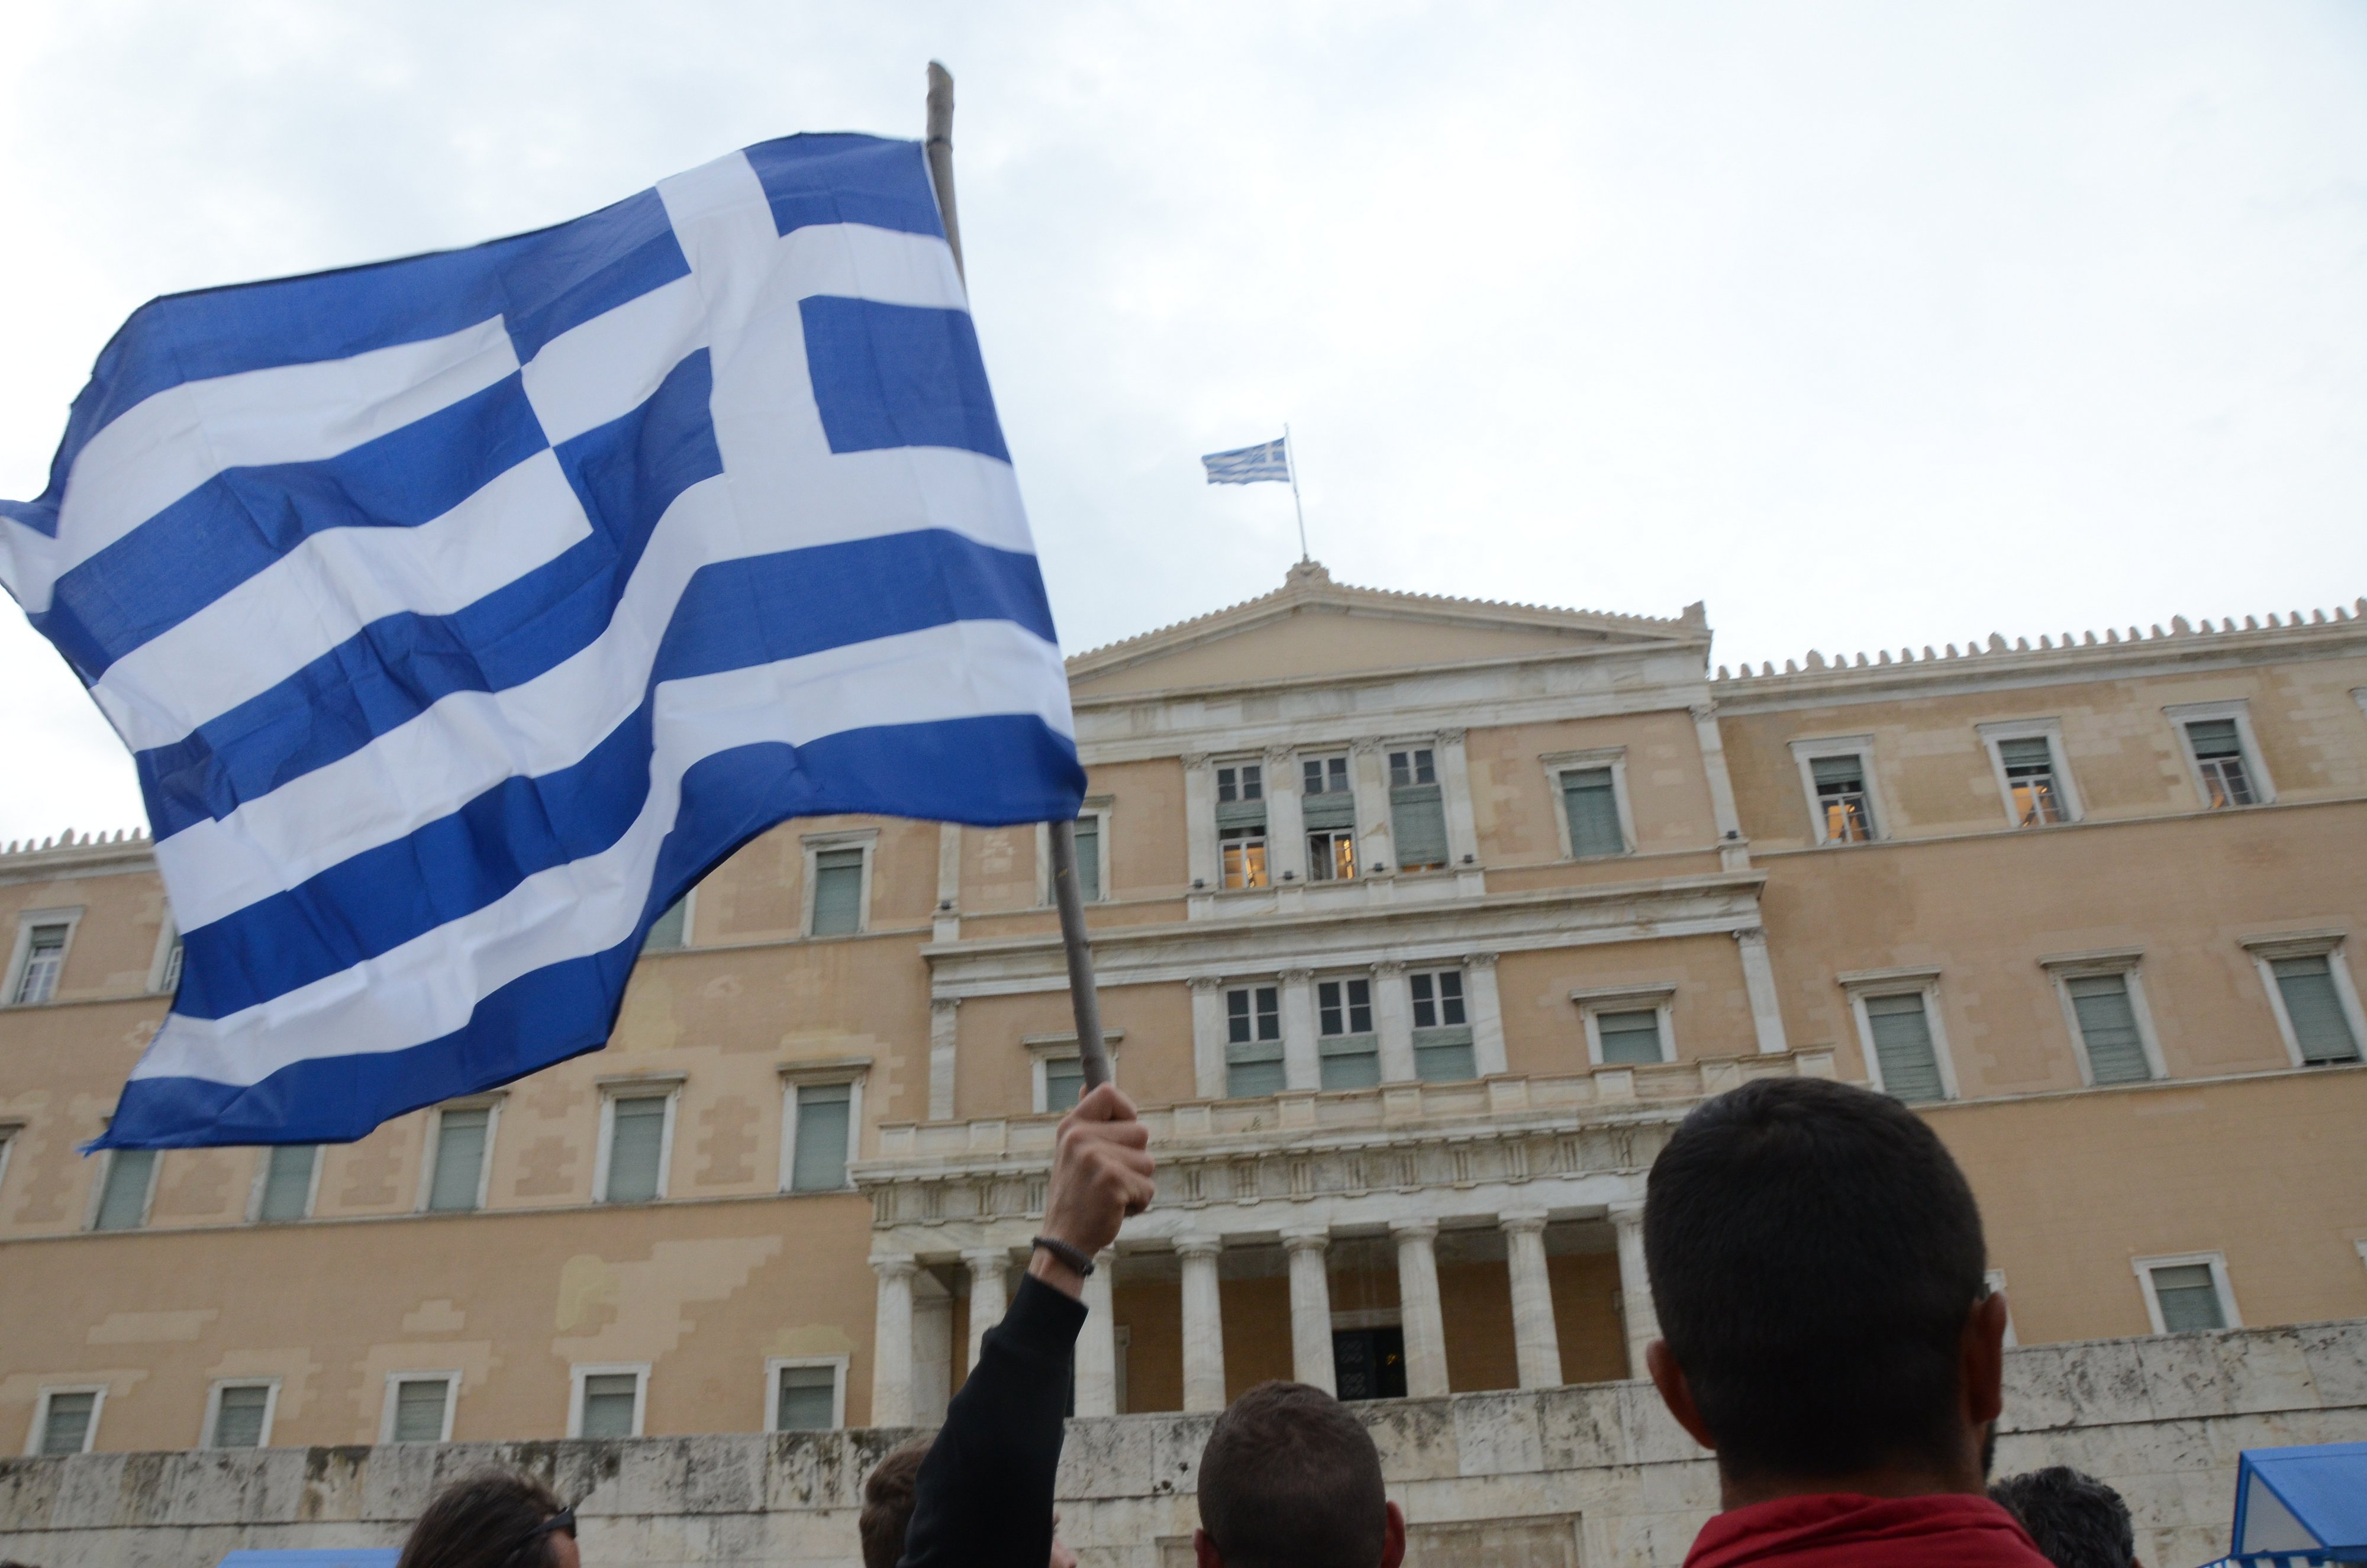 The POST-FINANCIAL CRISIS of GREECE and it's economic prospects